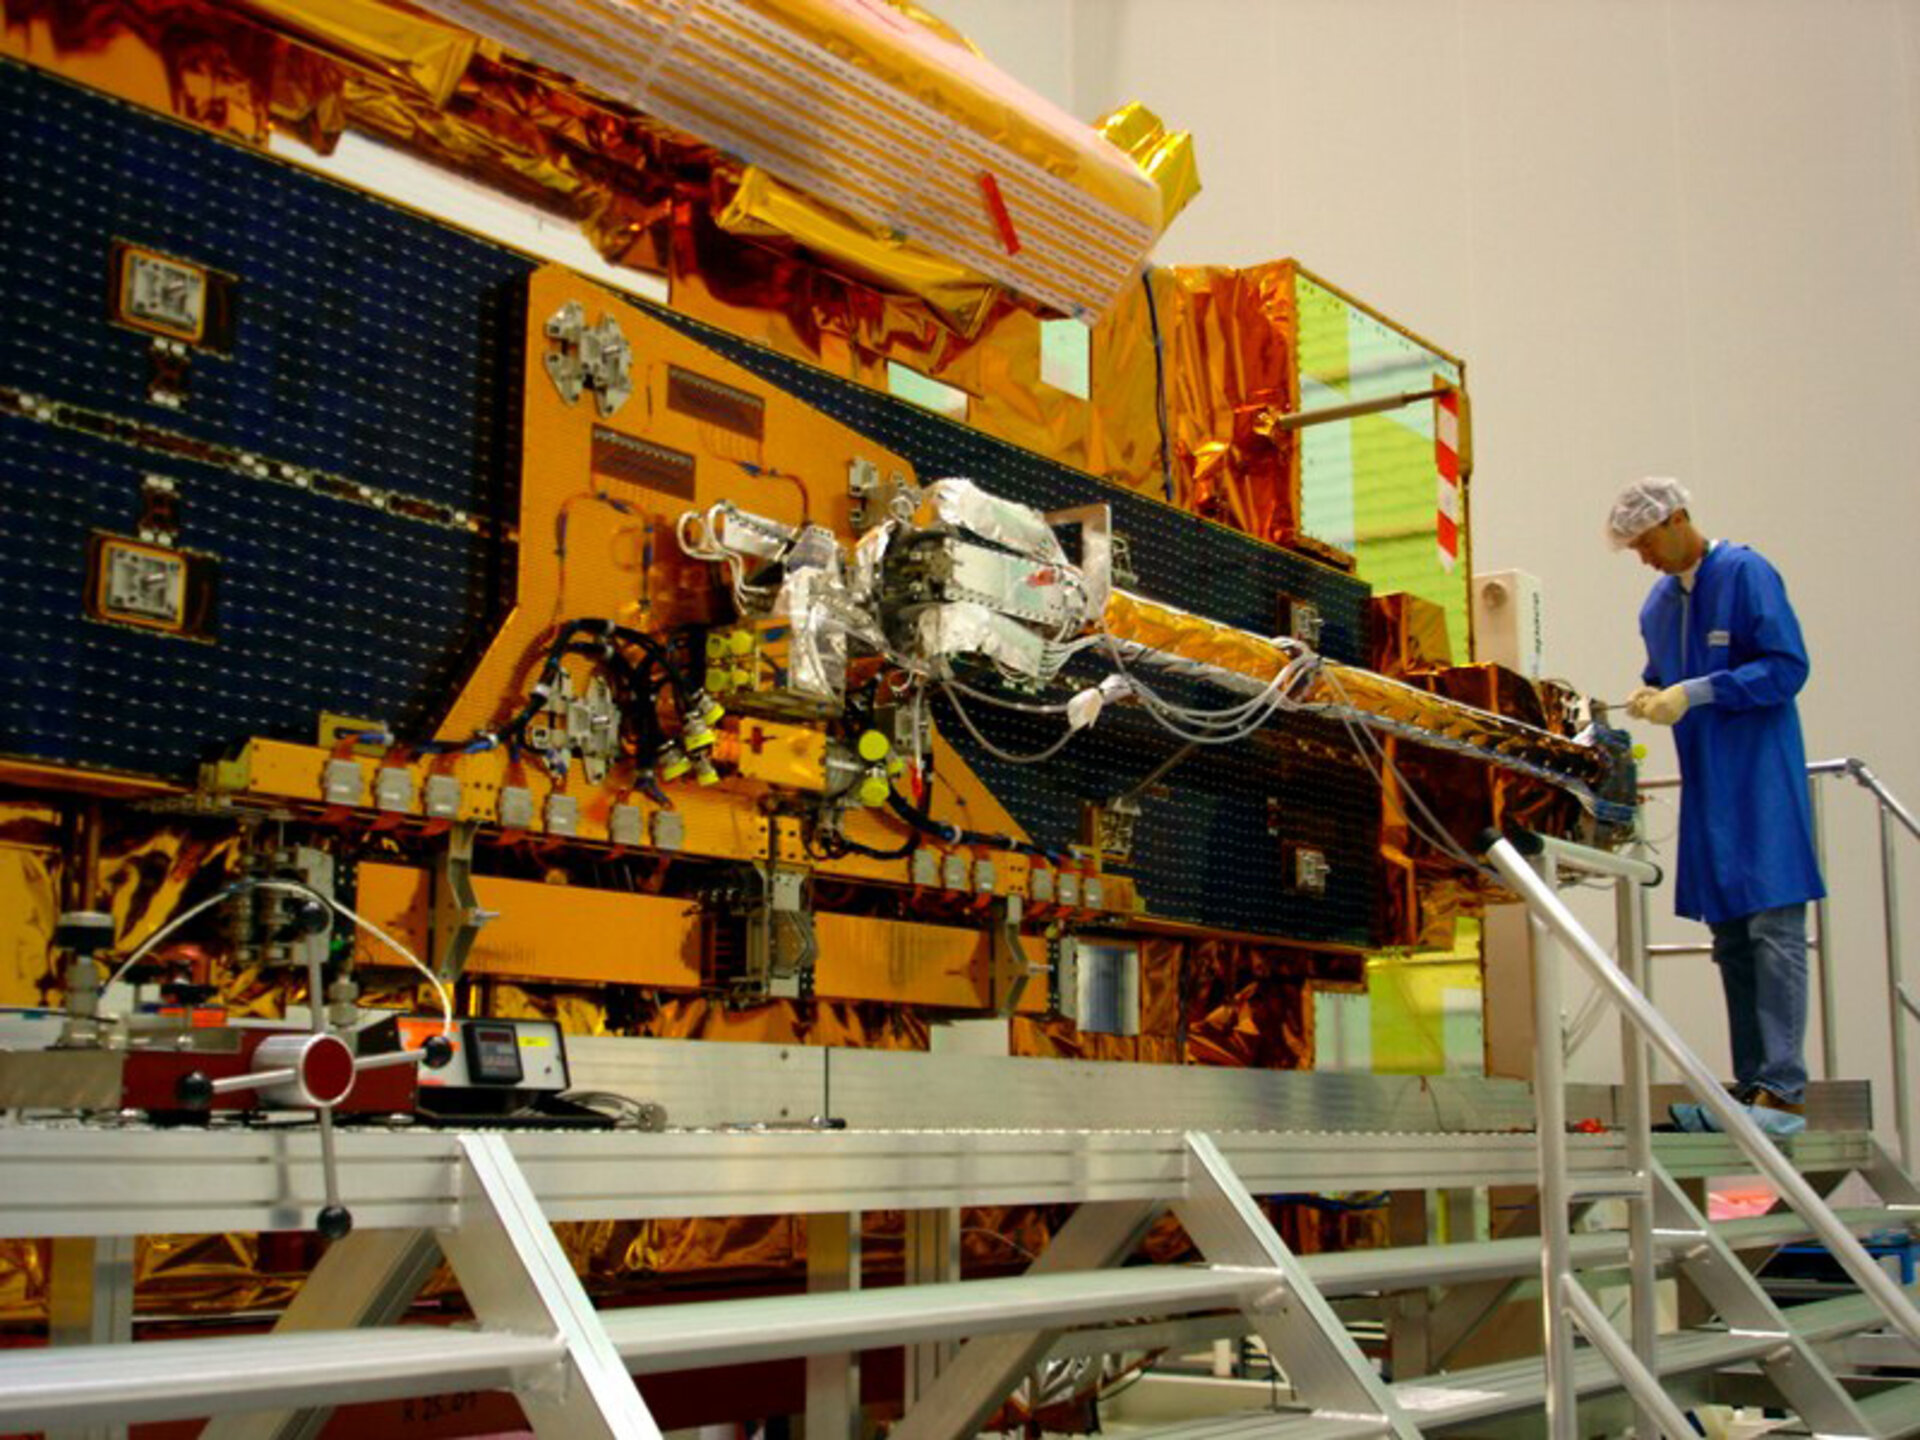 MetOp undergoing preparations in Baikonur